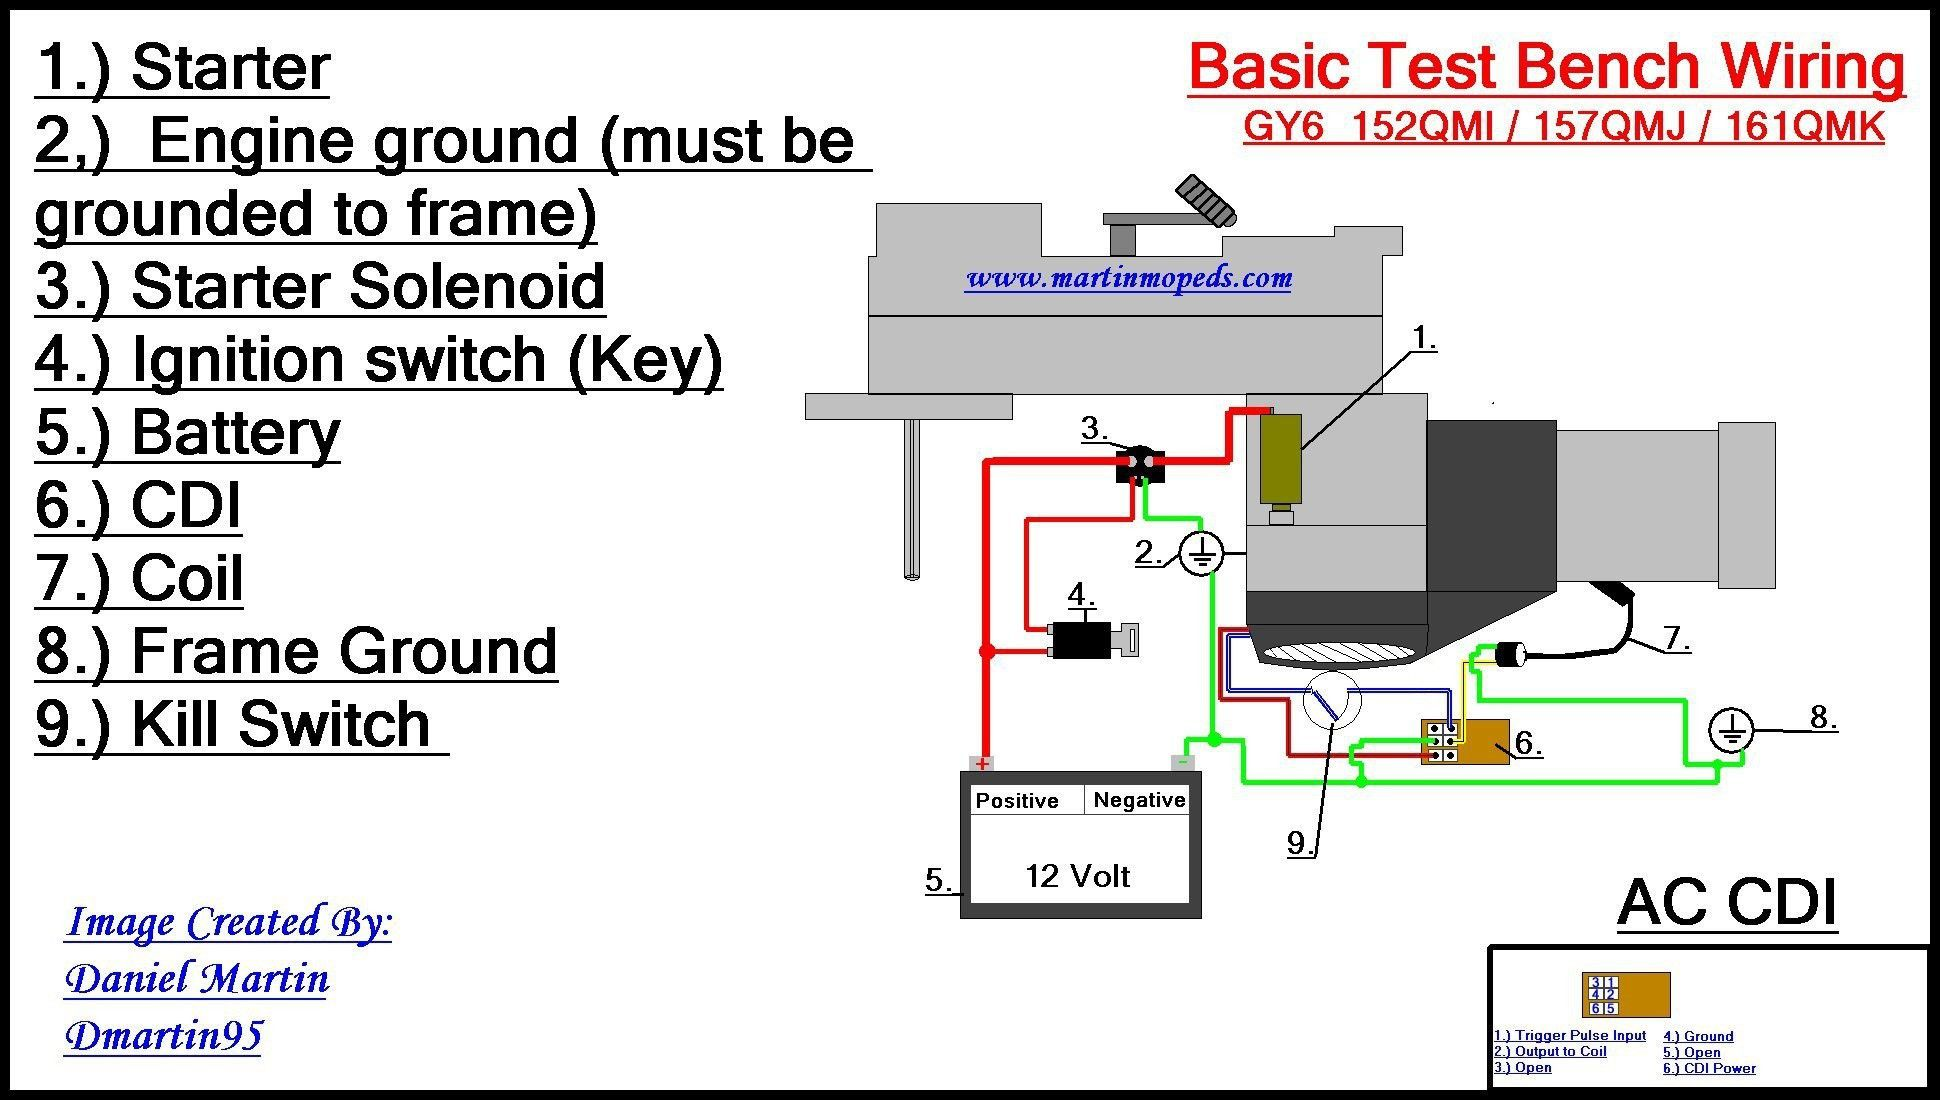 4 wire ignition switch diagram atv new excellent chinese cdi wiring best of [ 1940 x 1100 Pixel ]